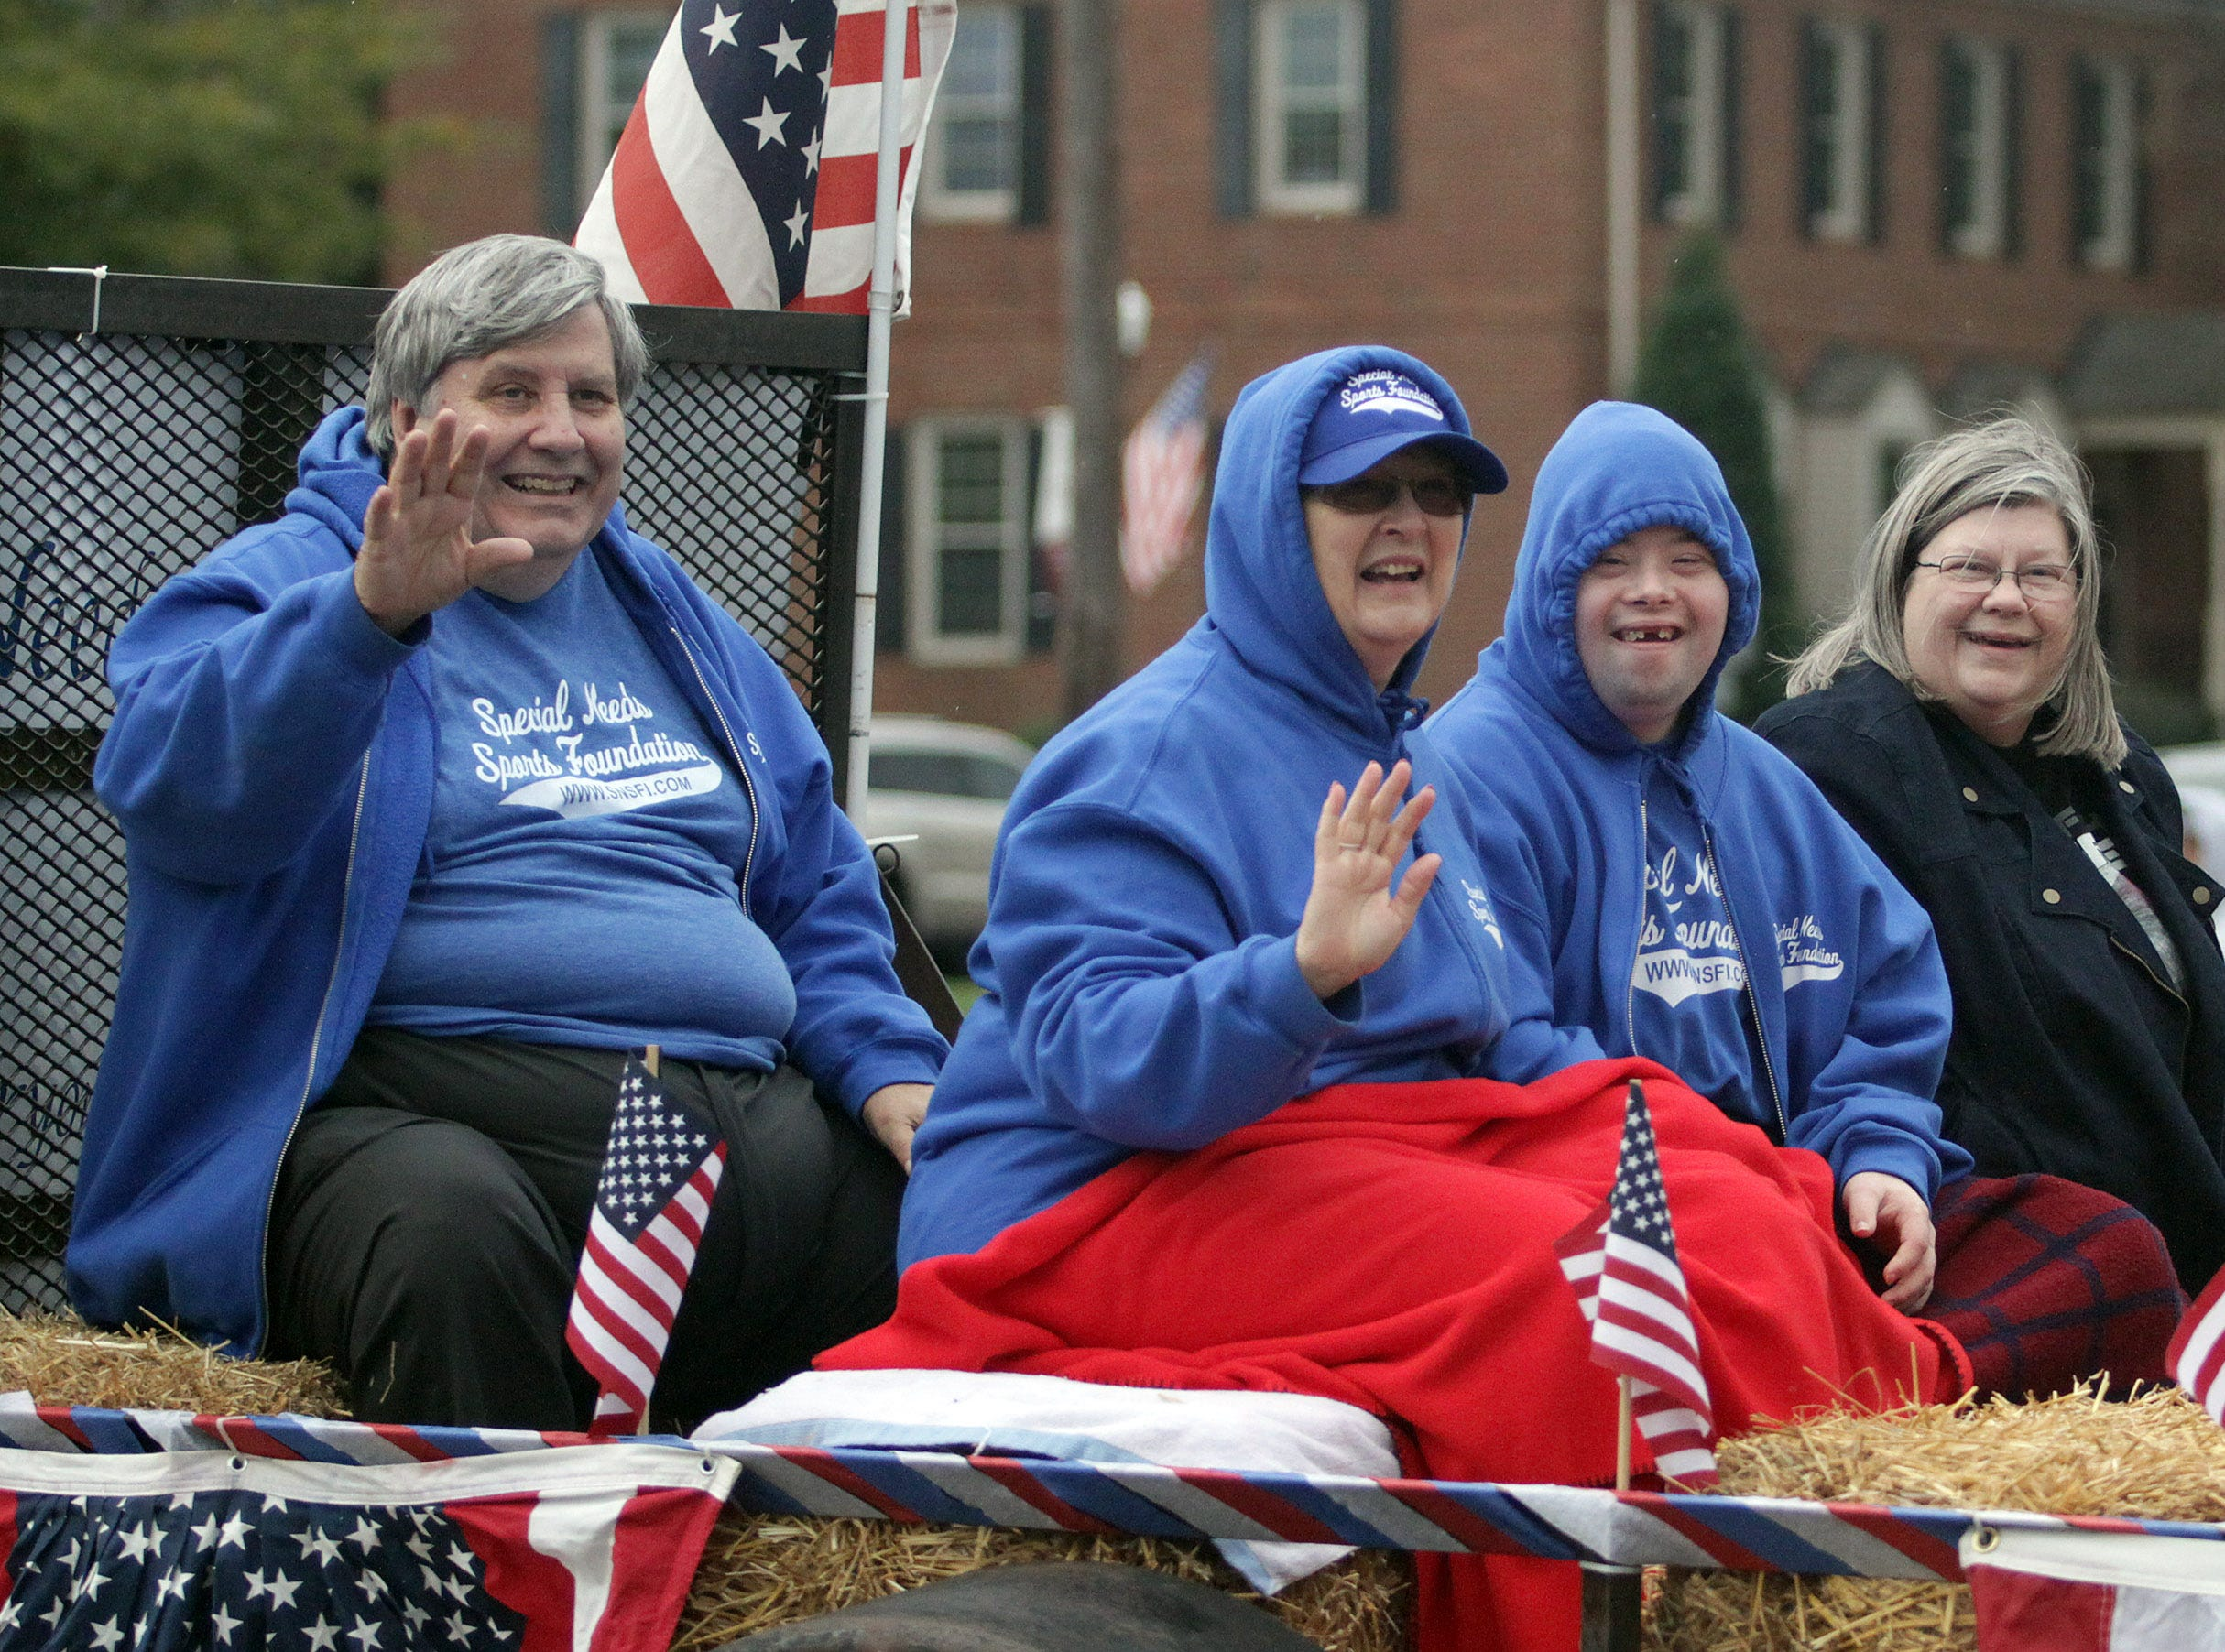 Folks from the Special Needs Sports Foundation ride in the Veterans Day Parade in Hendersonville, TN on Sunday, November 4, 2018.